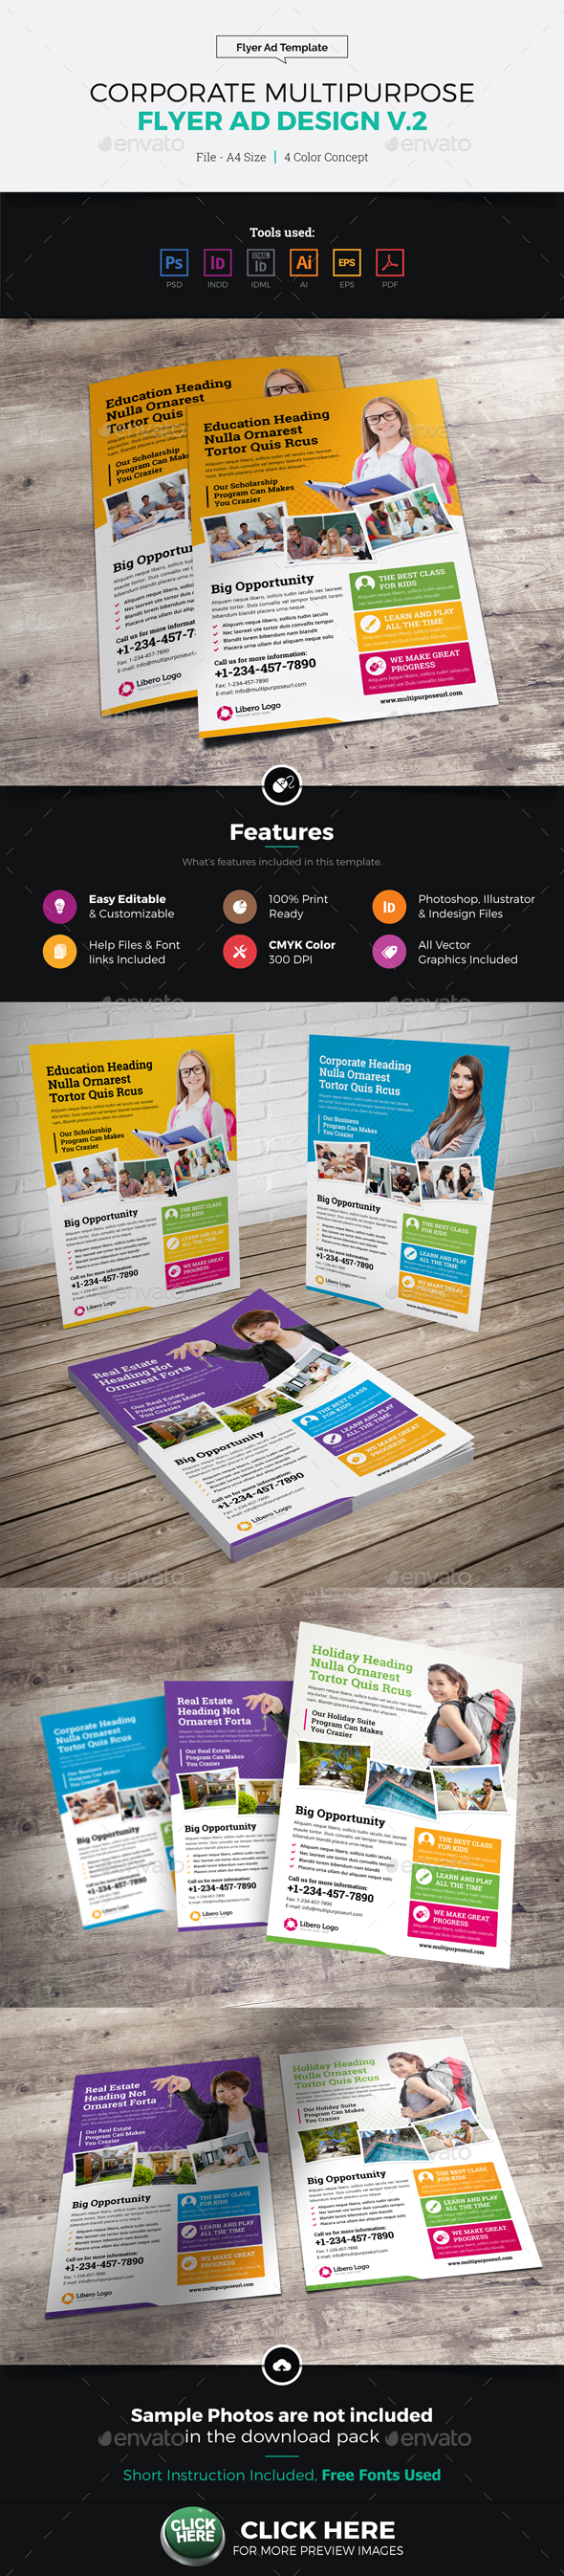 Corporate Multipurpose Flyer Ad Design v2 - Corporate Flyers